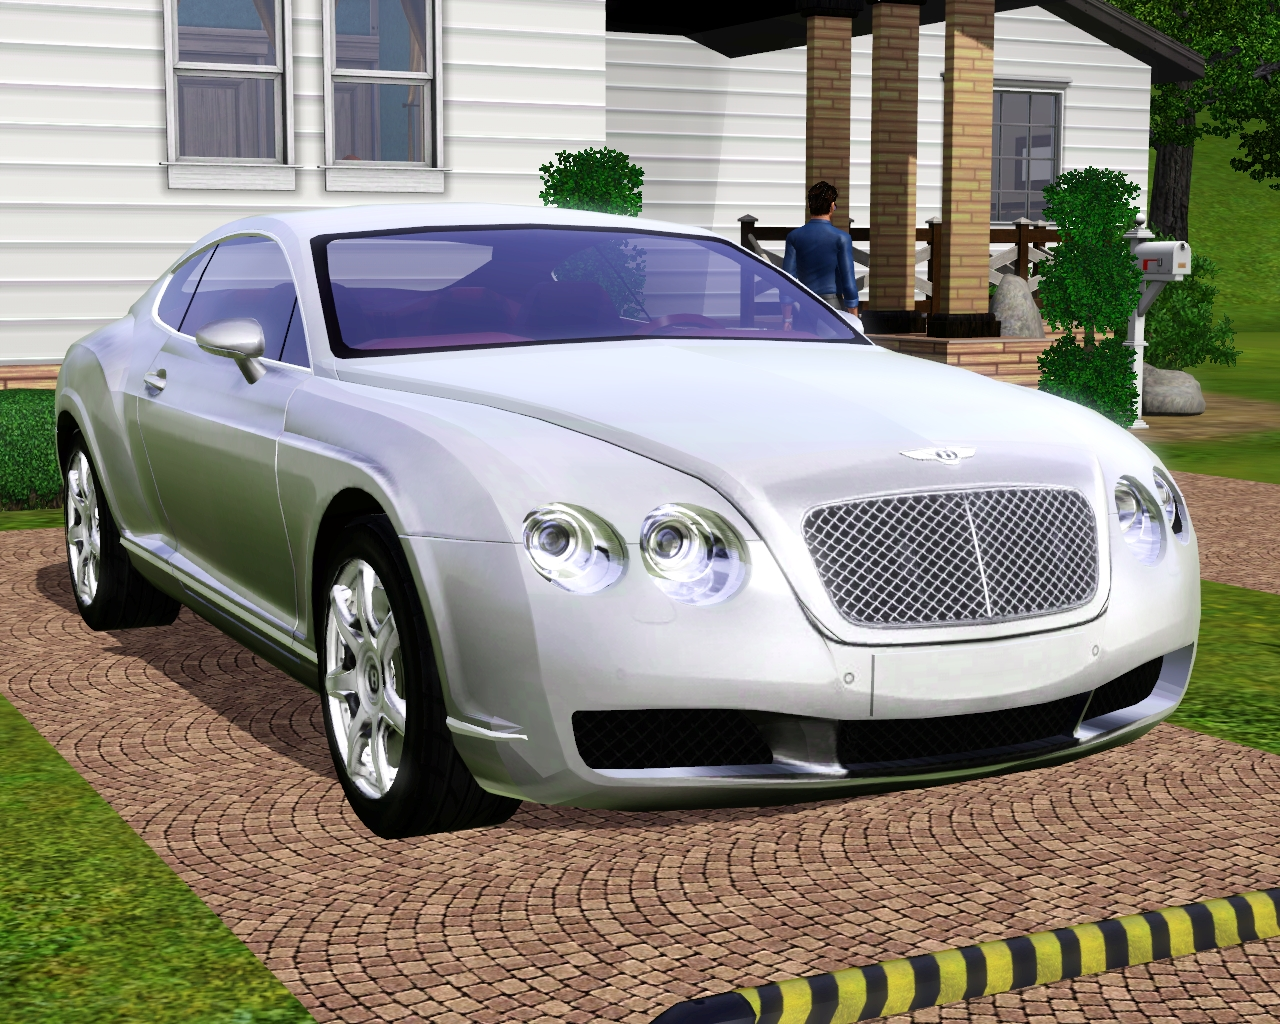 2010 Bentley Continental GT by Fresh-Prince